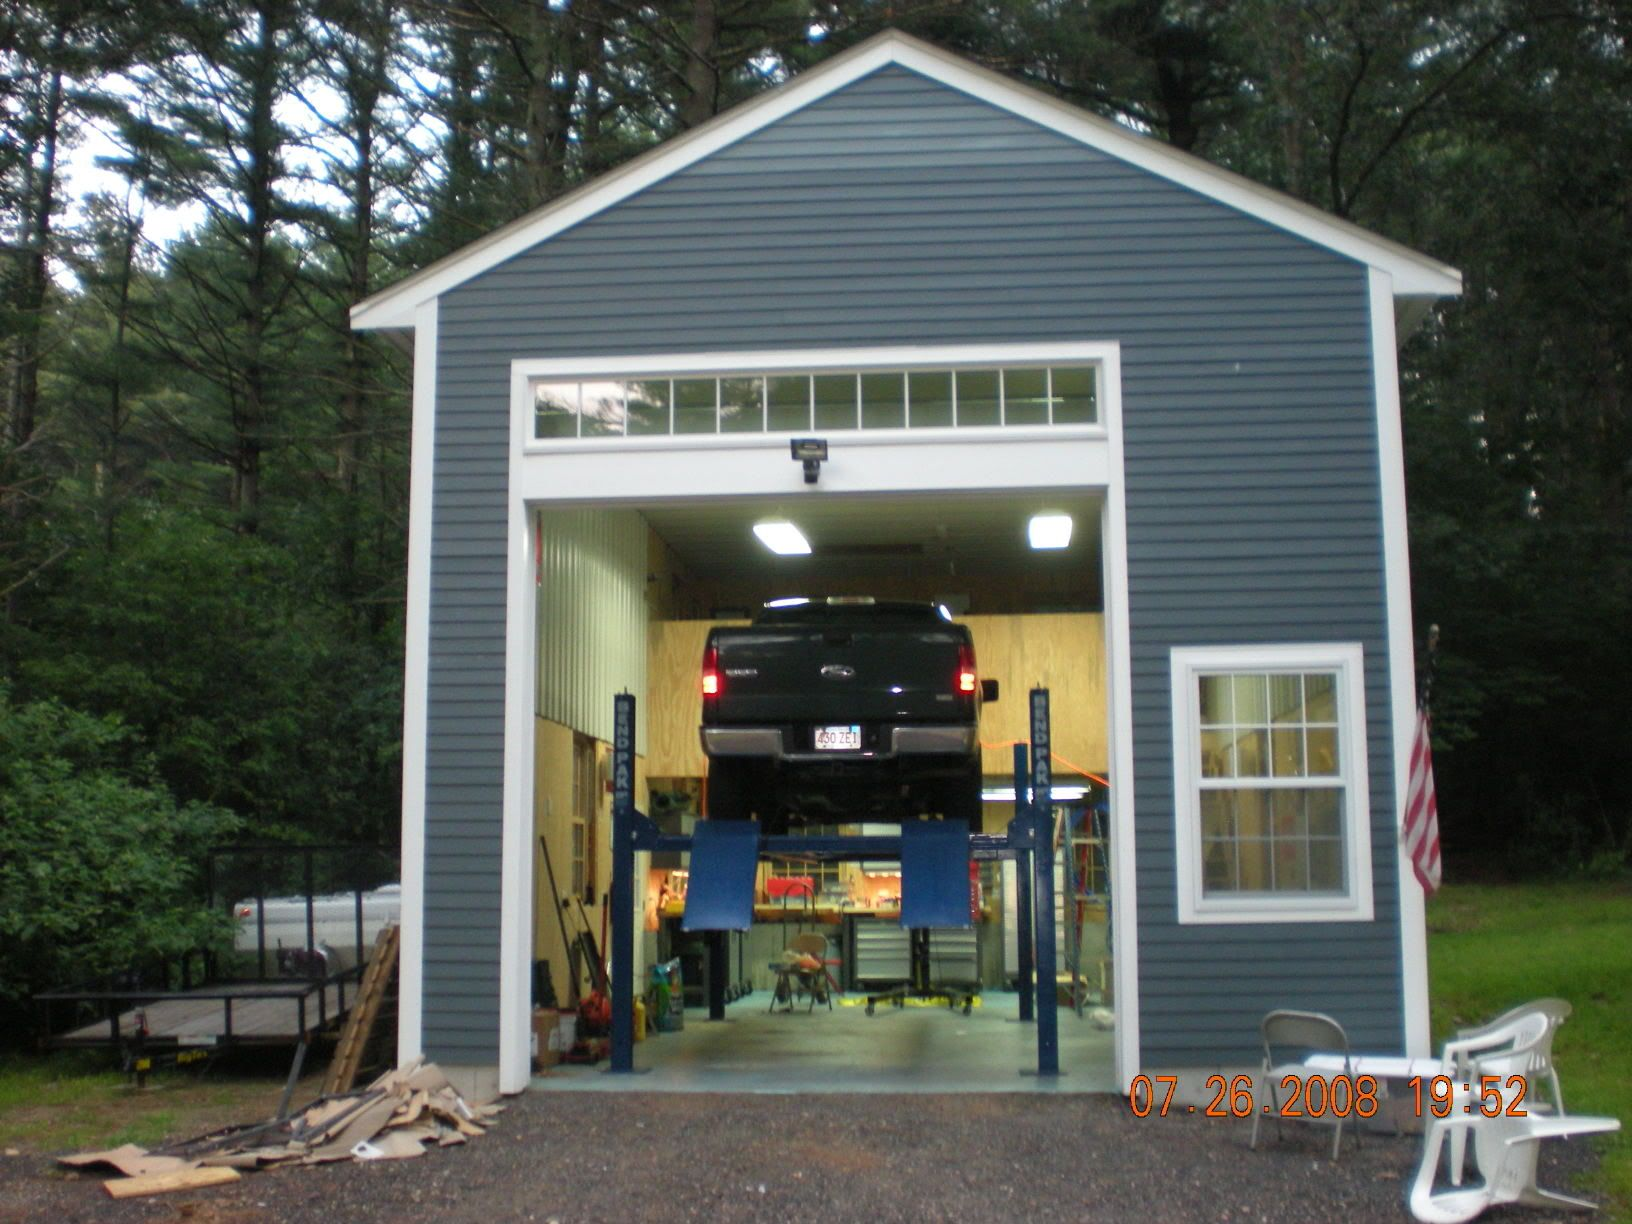 External Garage With 2 Car Lift Garage Workshop Garage Remodel